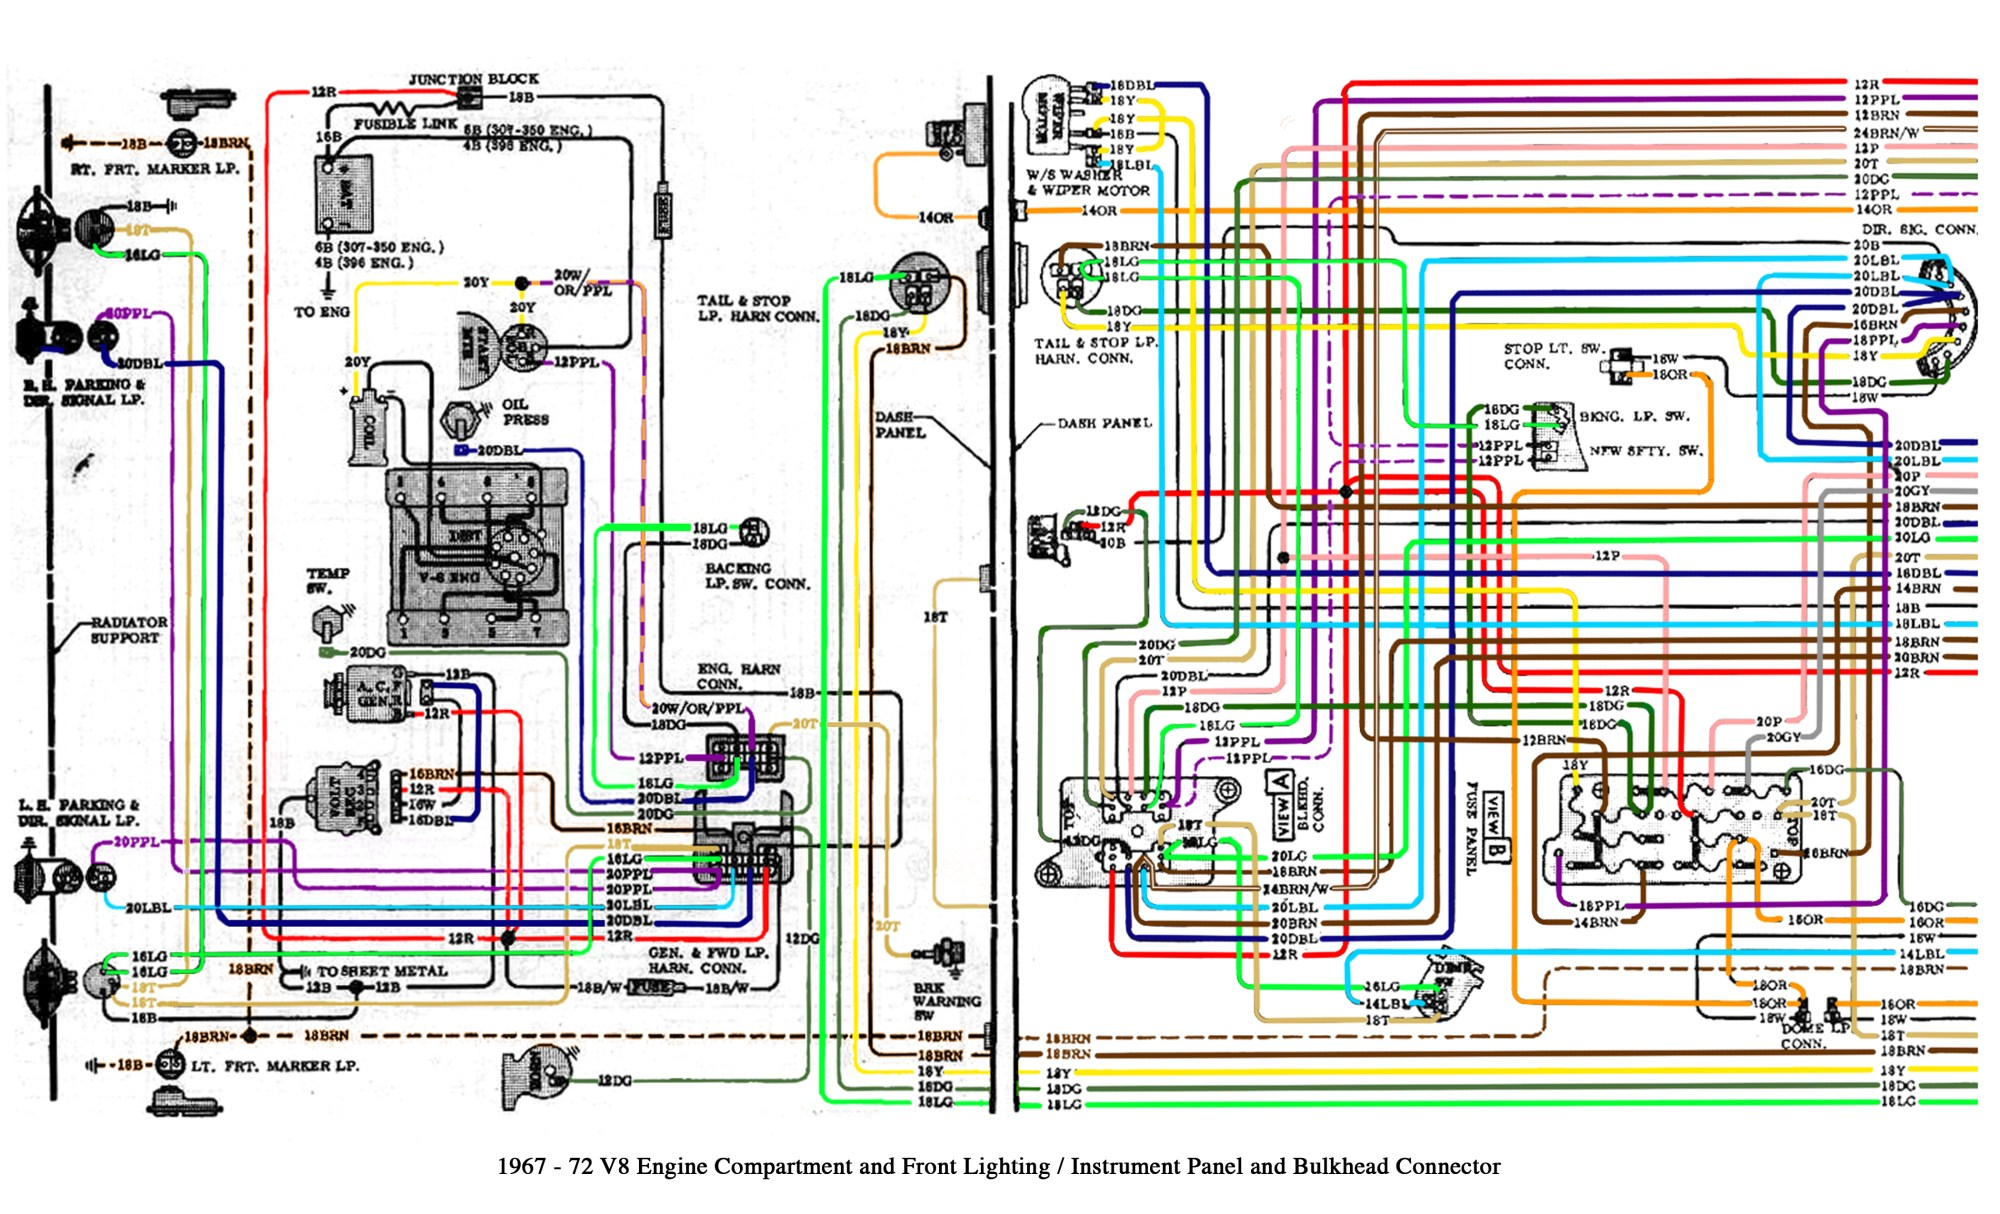 hight resolution of 1972 chevy truck wiring harness wiring diagram expert blower motor wiring harness 1972 chevy k 10